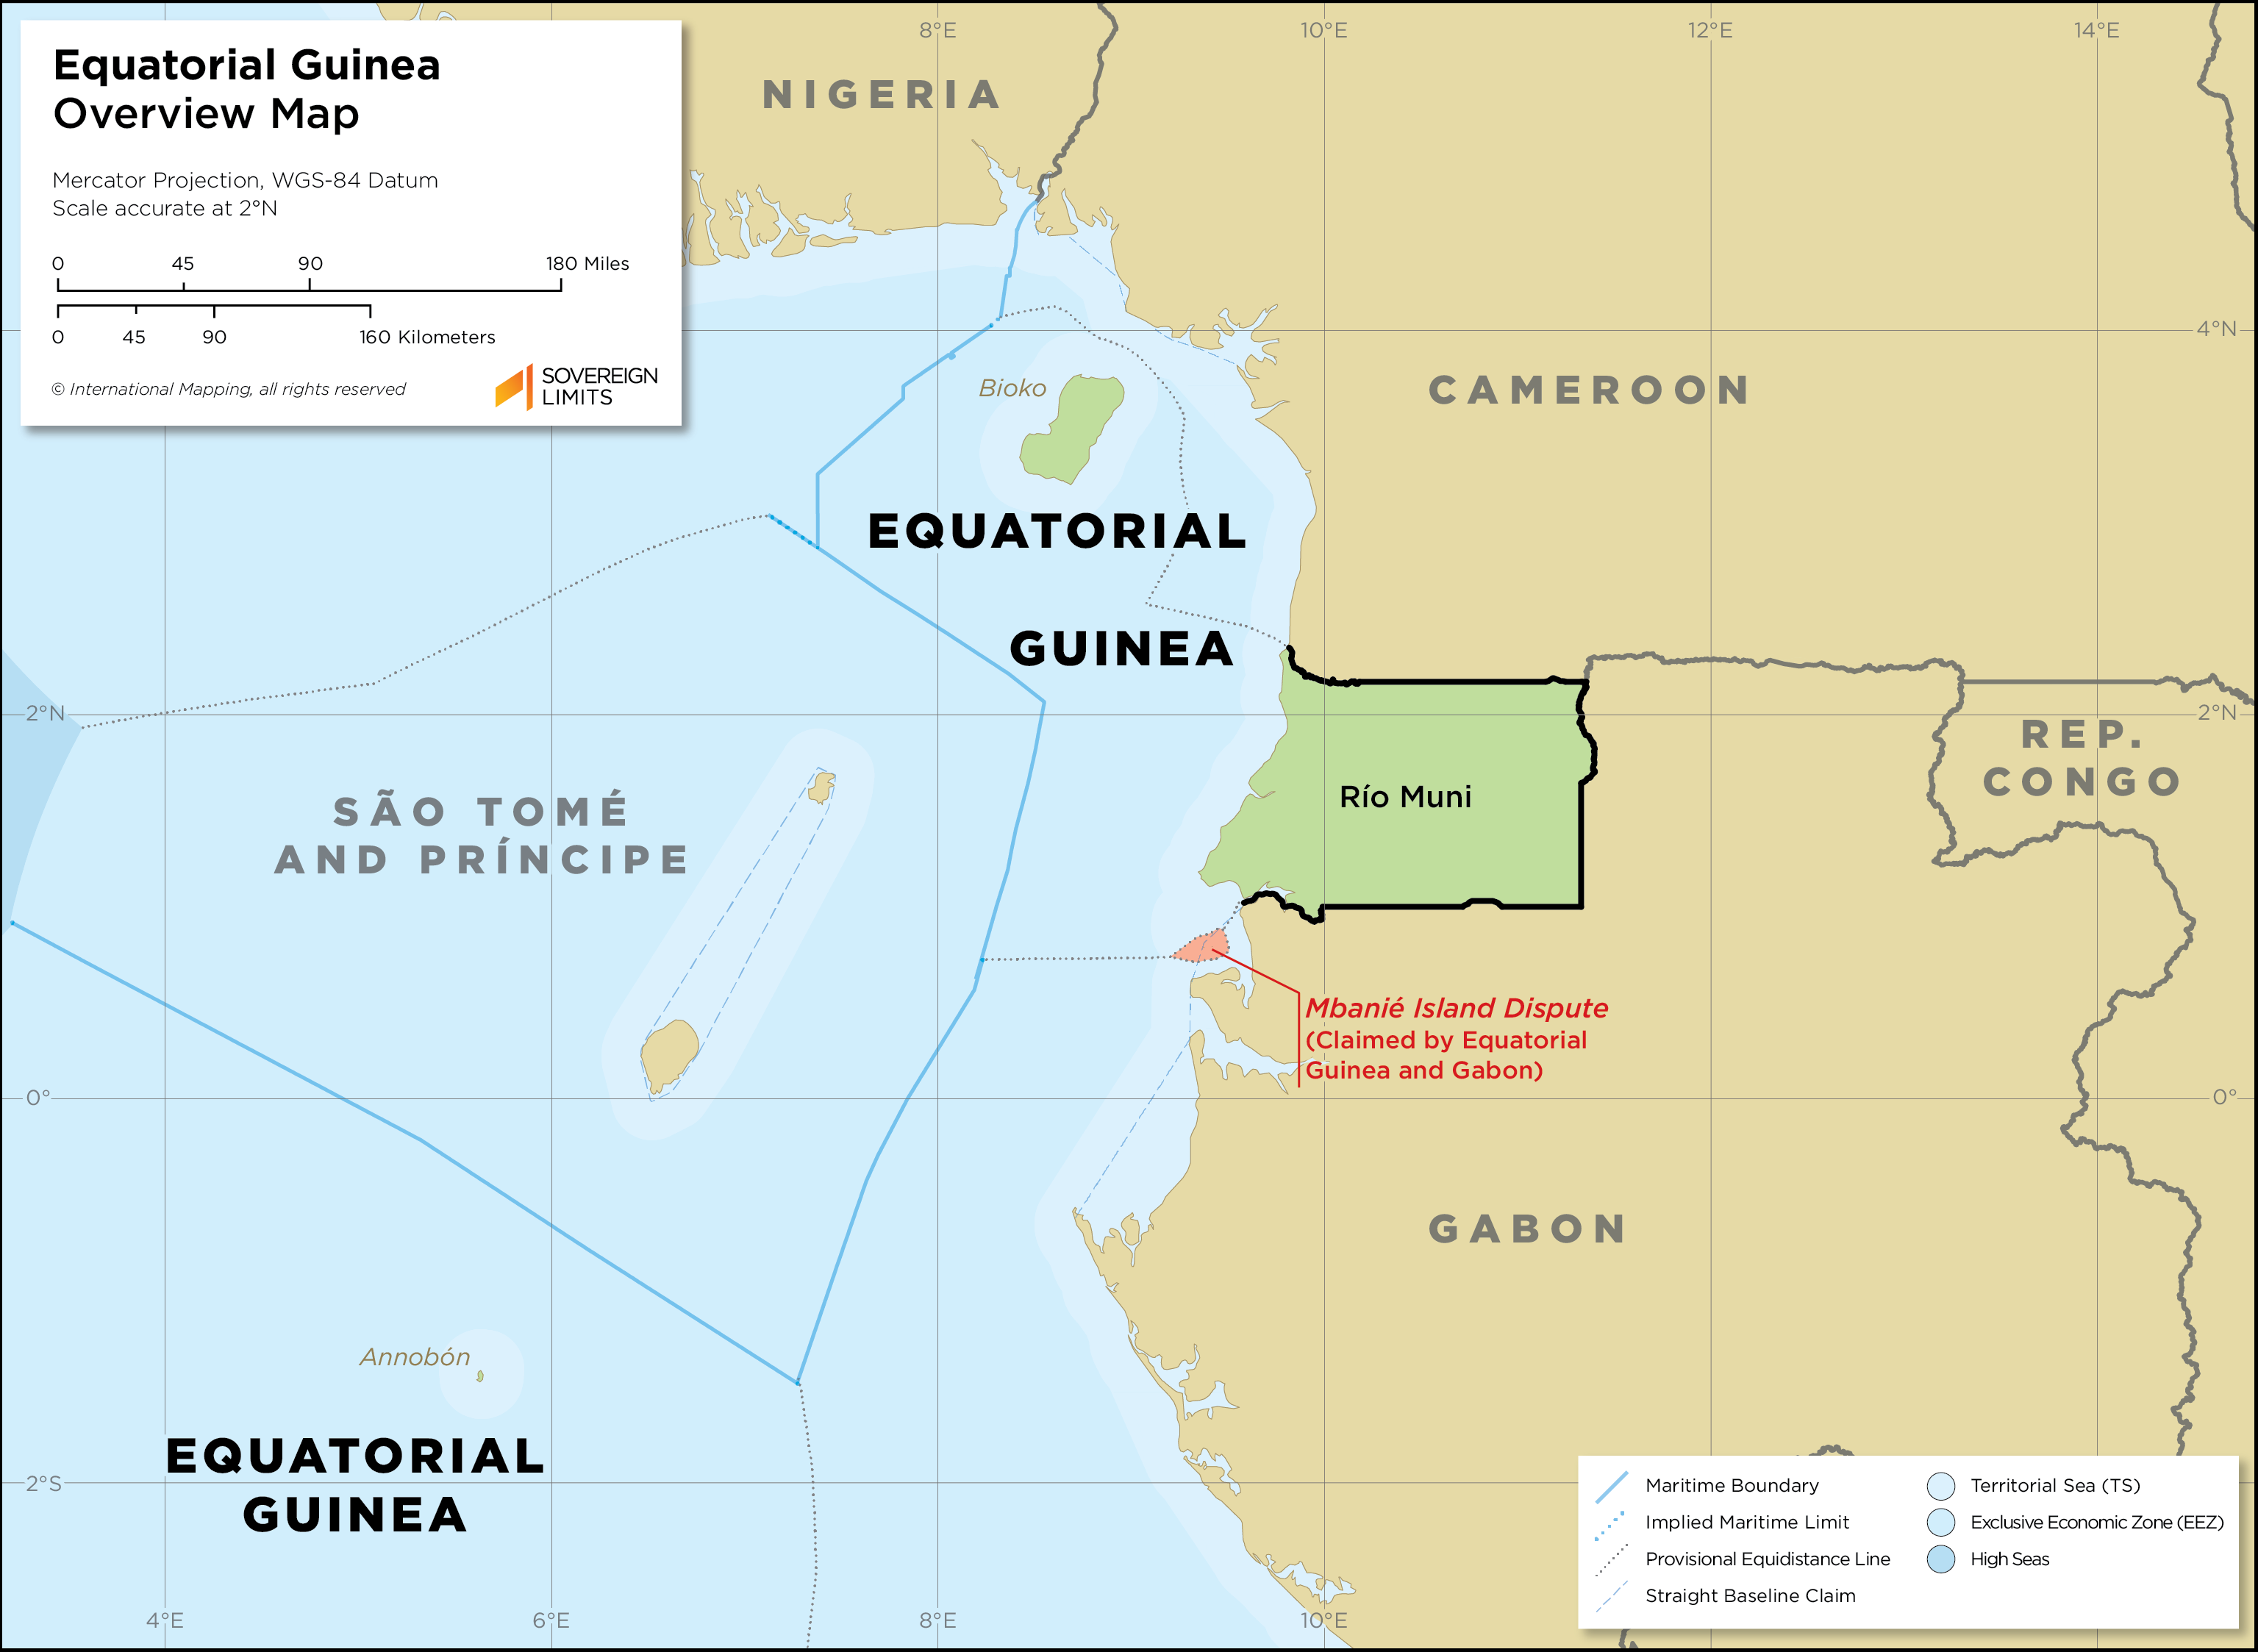 An overview map of Equatorial Guinea, showing both its continental territory known as Rio Muni along with its islands of Bioko and Annobon.